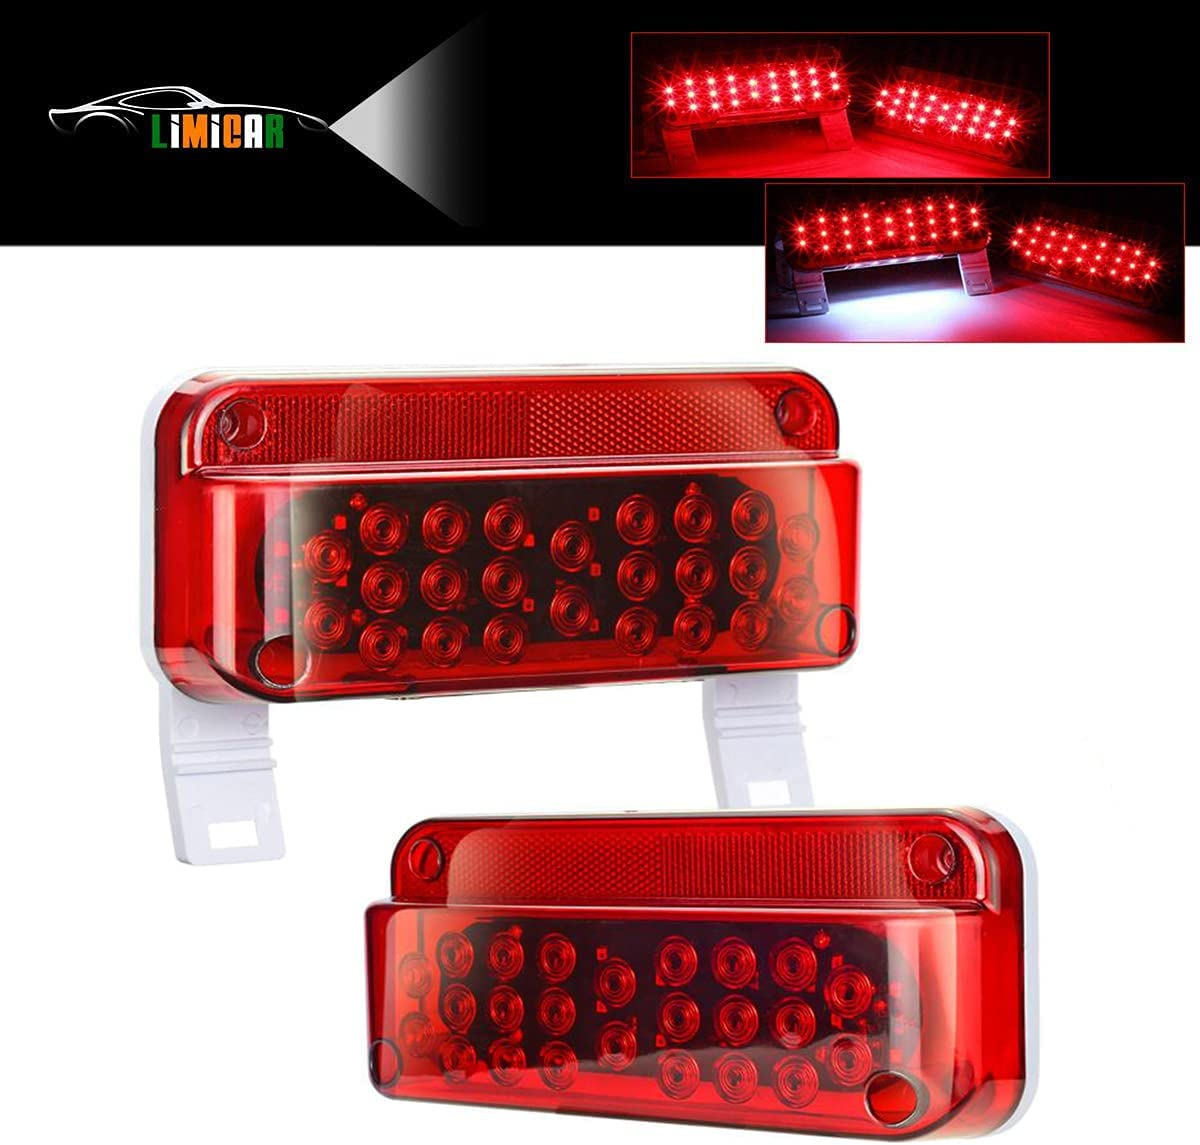 LIMICAR San Francisco Mall Chicago Mall 53 LED Red RV Camper Brake Turn Trailer Stop Tail Lights